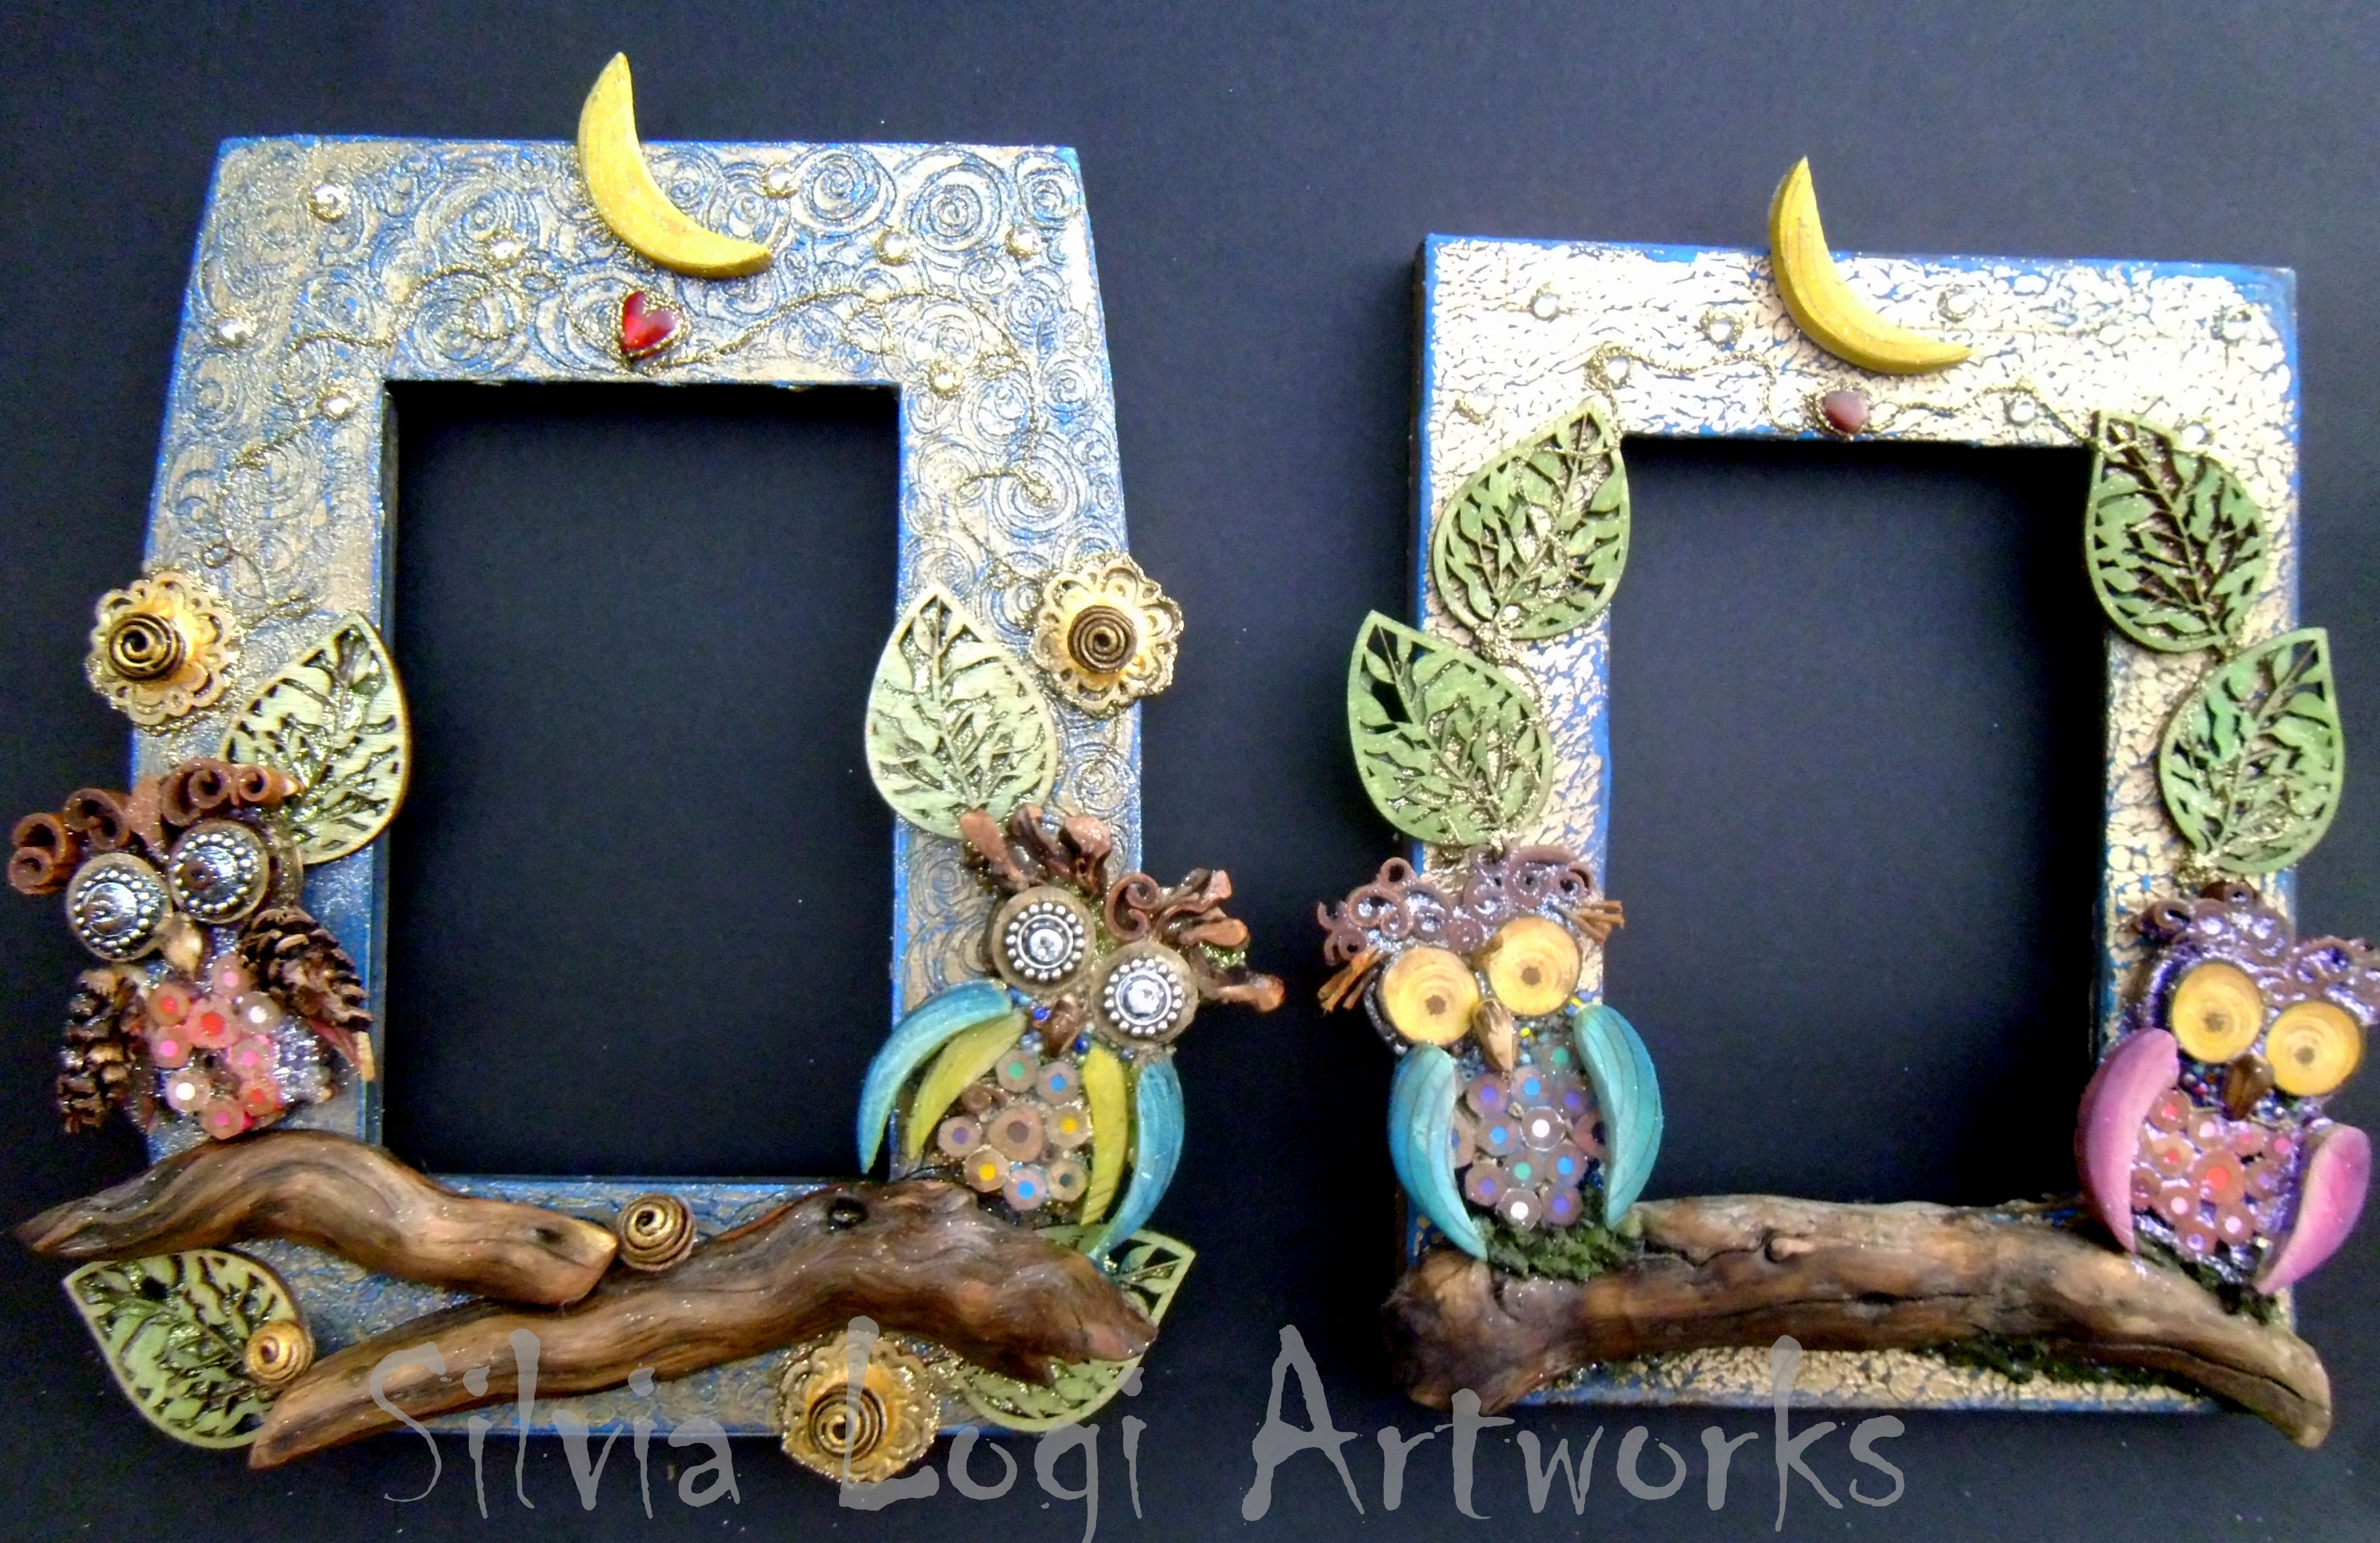 #owls #photoframes #moon in #wood #mosaic see more on my FB https://www.facebook.com/pages/Silvia-Logi-Artworks/121475337893535?ref=br_rs